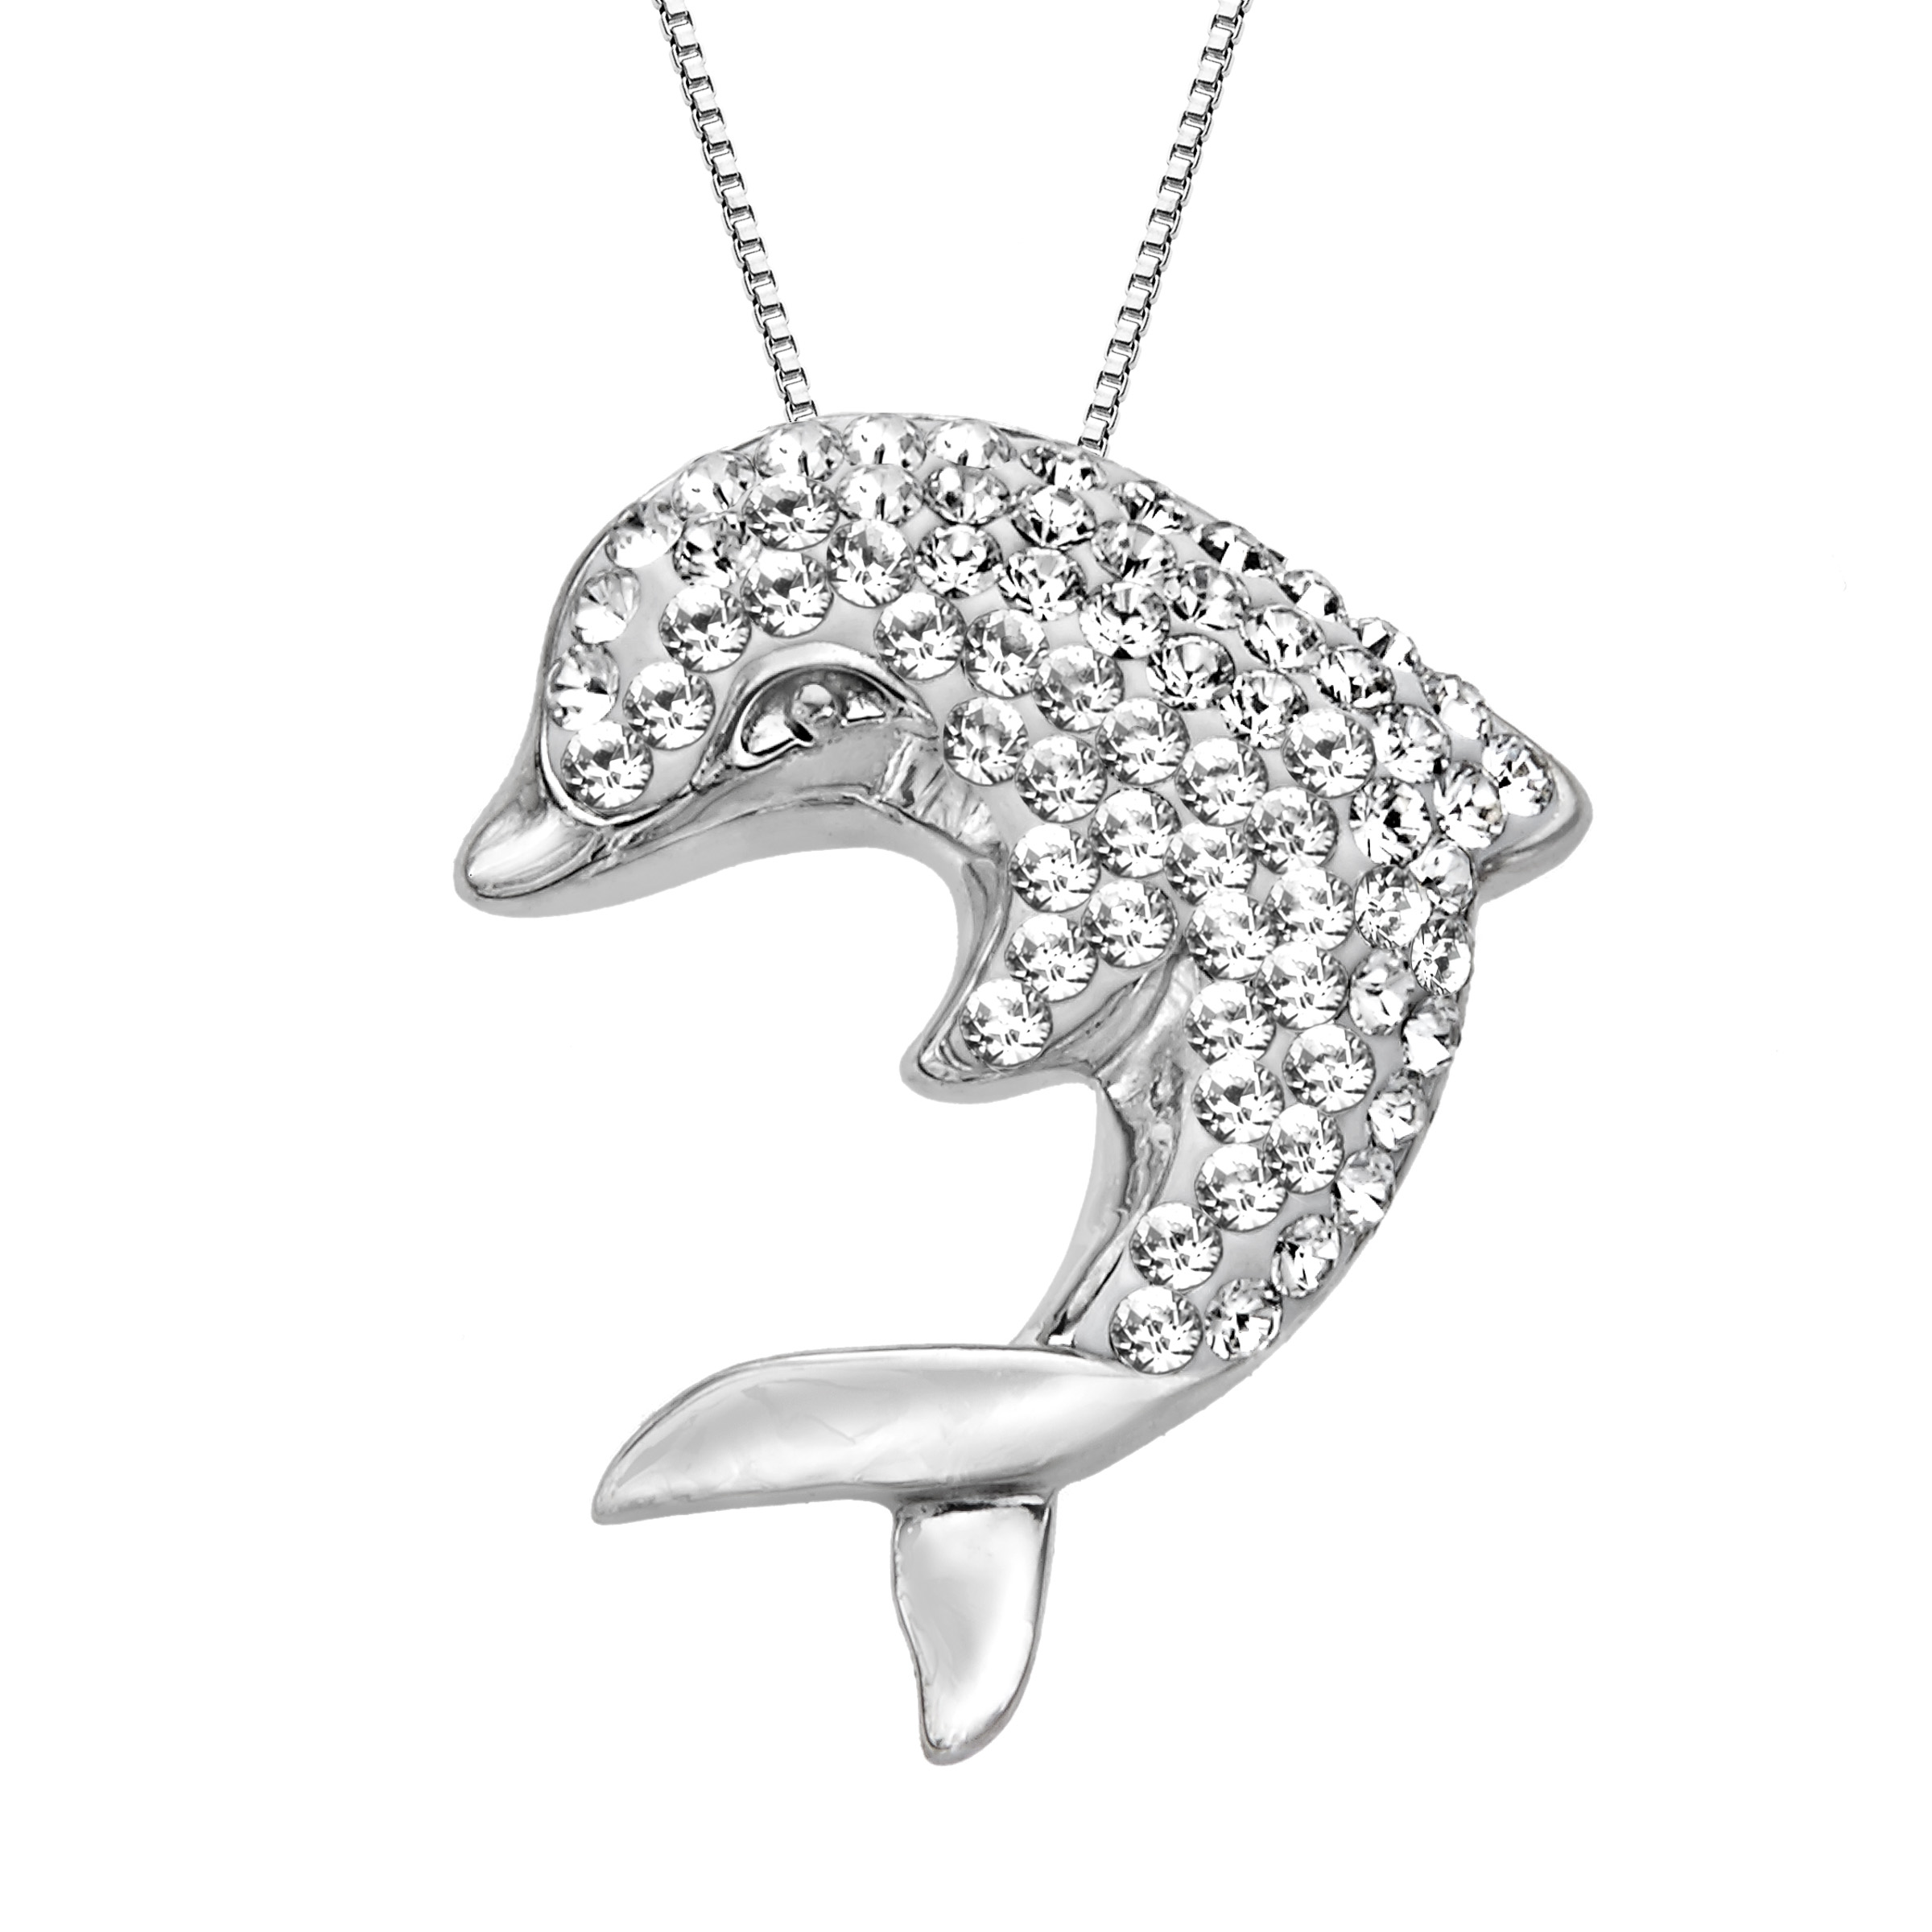 Luminesse Dolphin Pendant Necklace with Swarovski Crystals in Sterling Silver